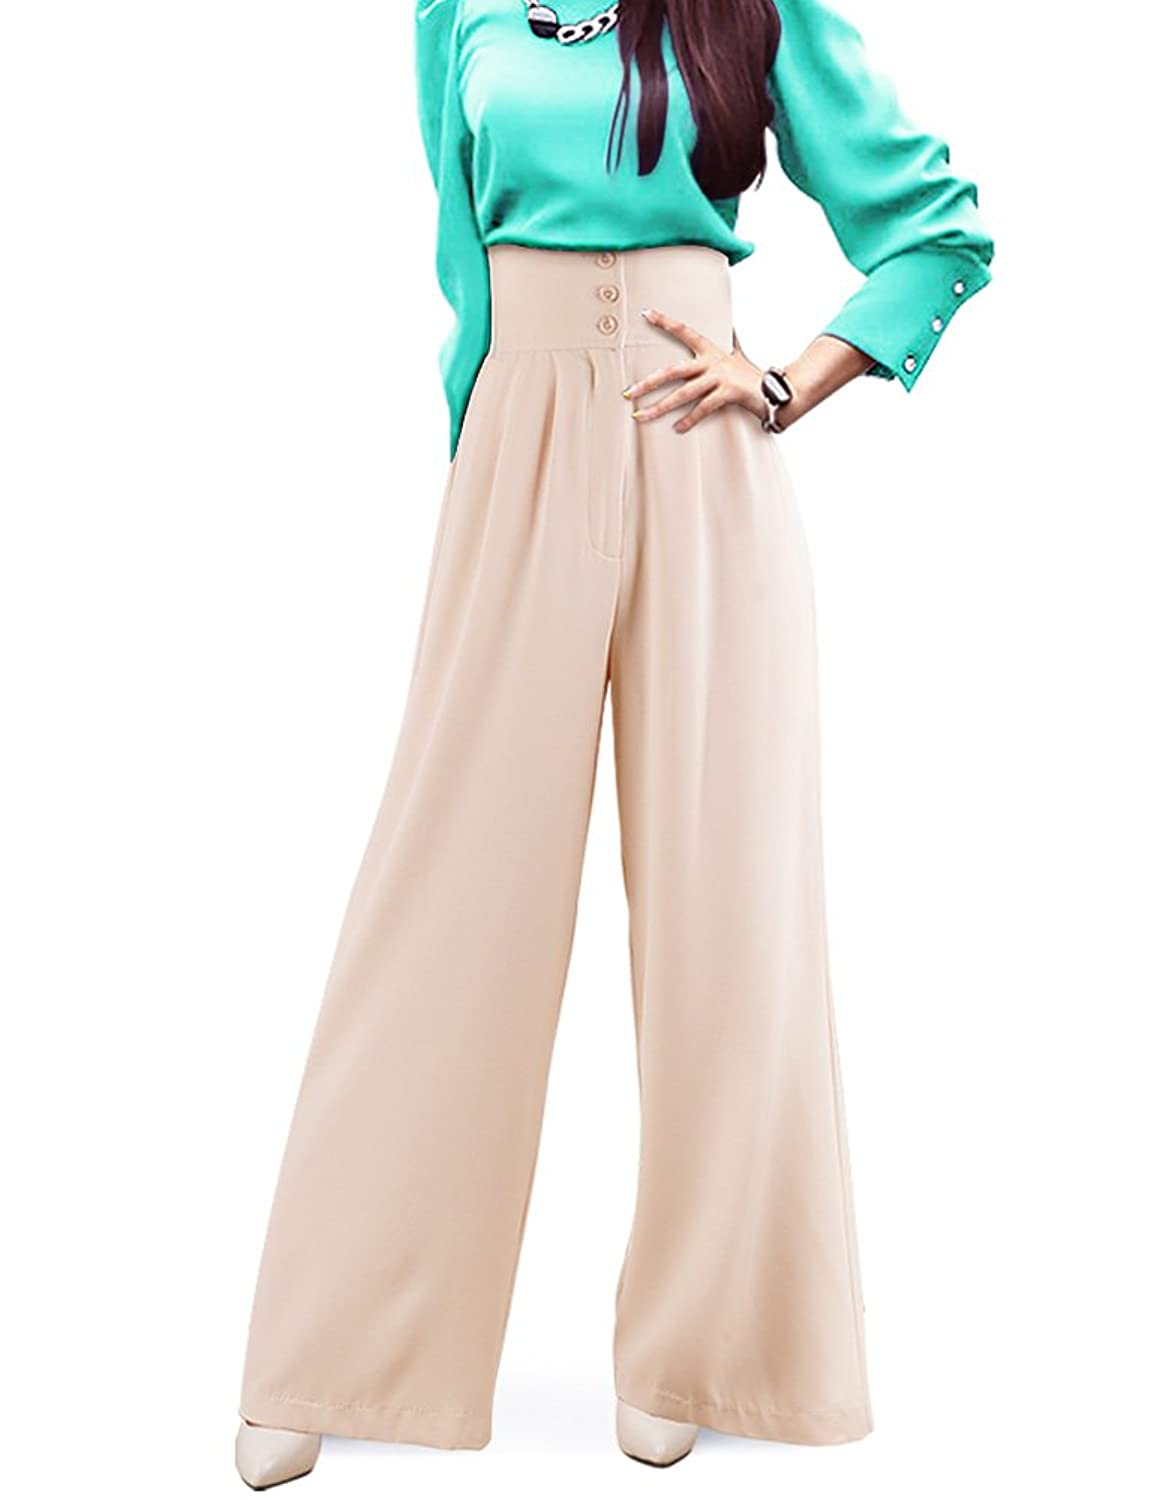 Vintage High Waisted Trousers, Sailor Pants, Jeans DELUXSEY Silhouette-Lengthening High Waist Wide Leg Pants Palazzo Pants 4 Women $34.99 AT vintagedancer.com